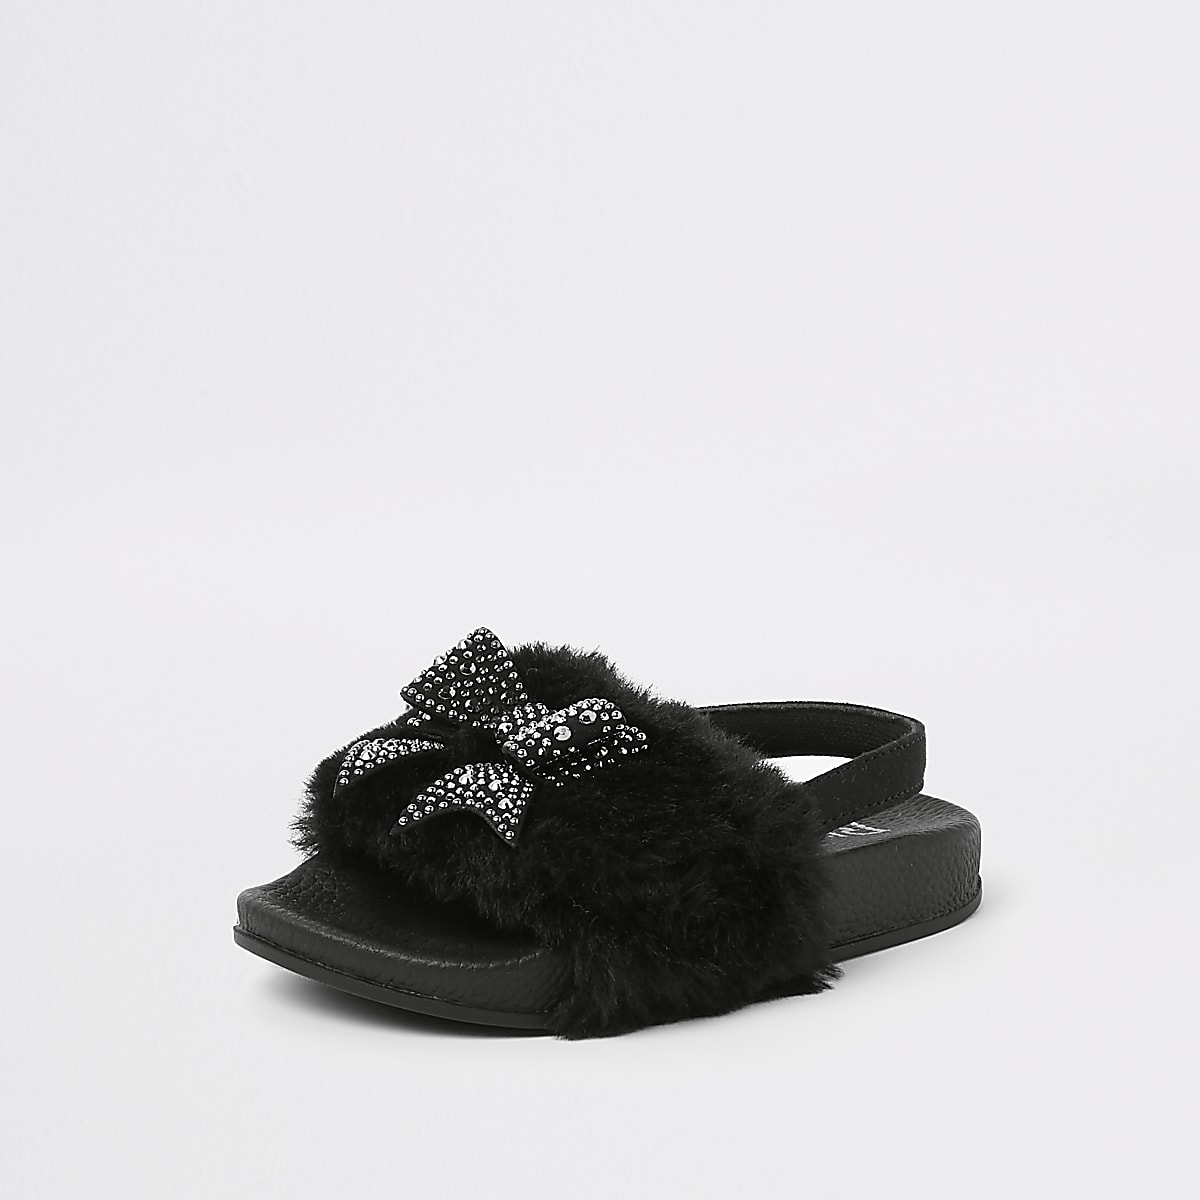 b43cde0cfb7c Mini girls black faux fur bow sliders - Baby Girls Sandals - Baby Girls  Shoes   Boots - Mini Girls - girls